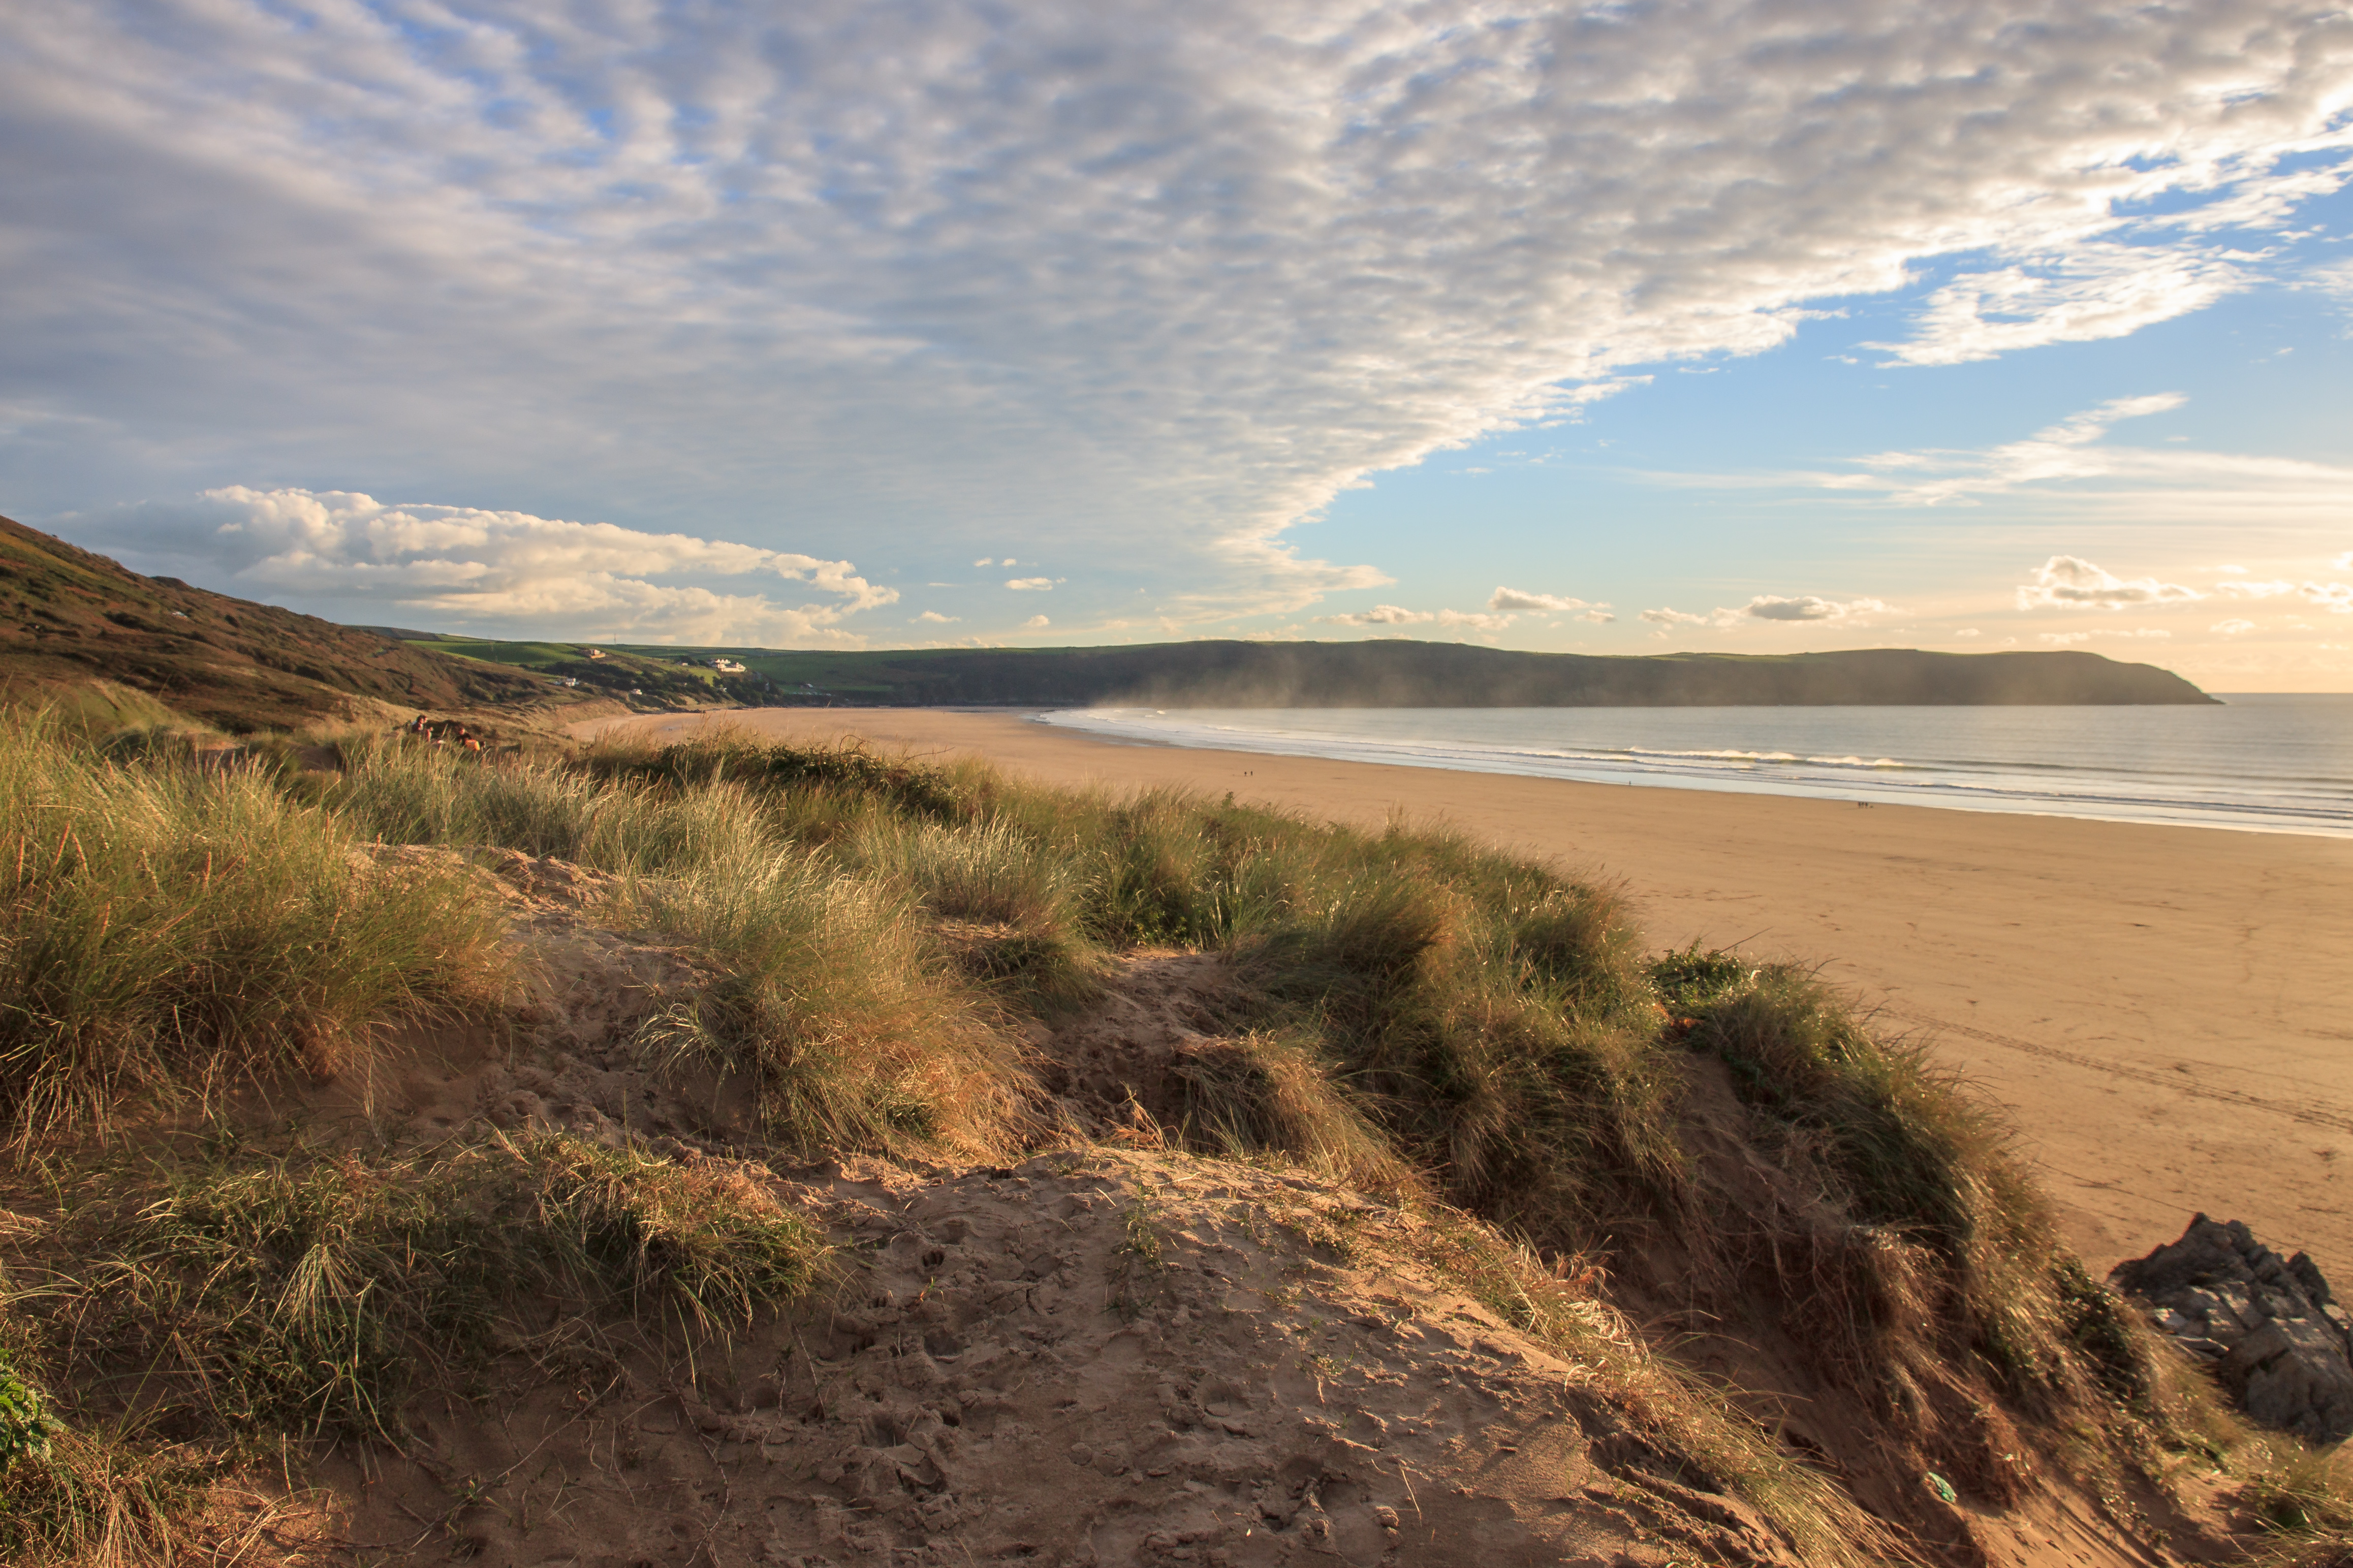 Dunes at Woolacombe Beach